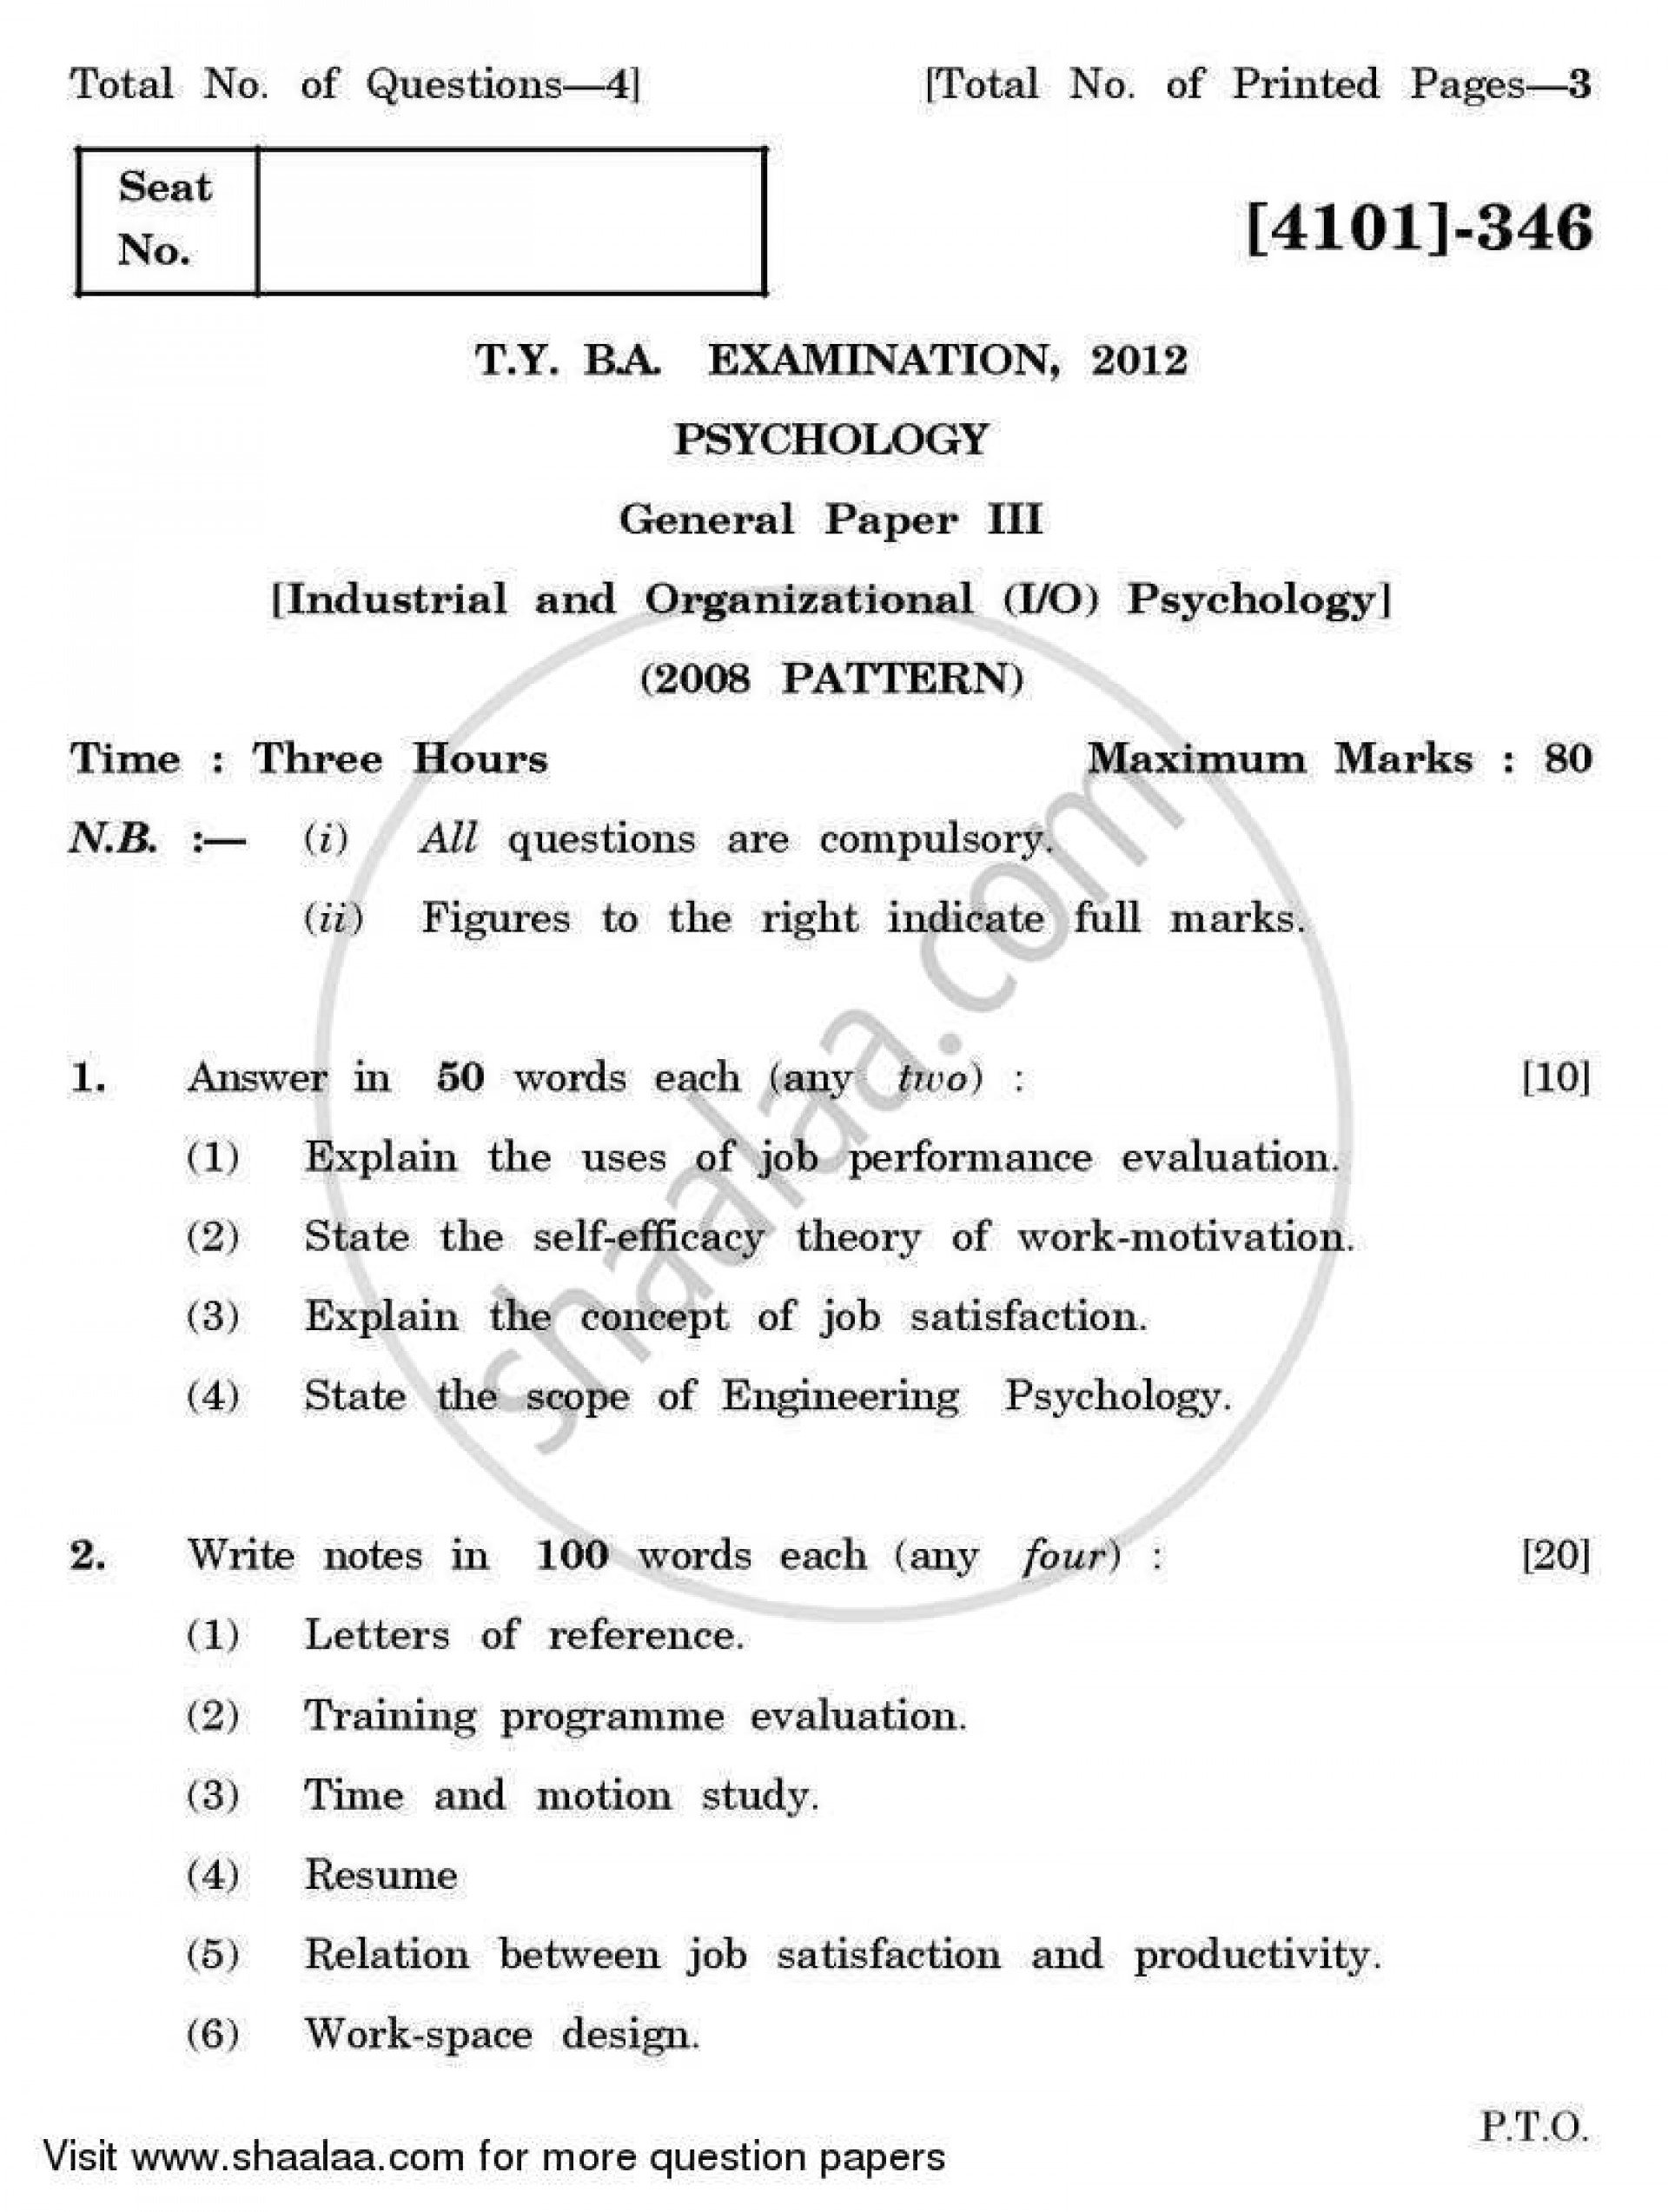 015 Research Papers For Psychology Paper University Of Pune Bachelor General Industrial Organizational Tyba 3rd Year 2011 2423148fb186f44d8a12cf9 Fascinating Dreams Topics Social 1920